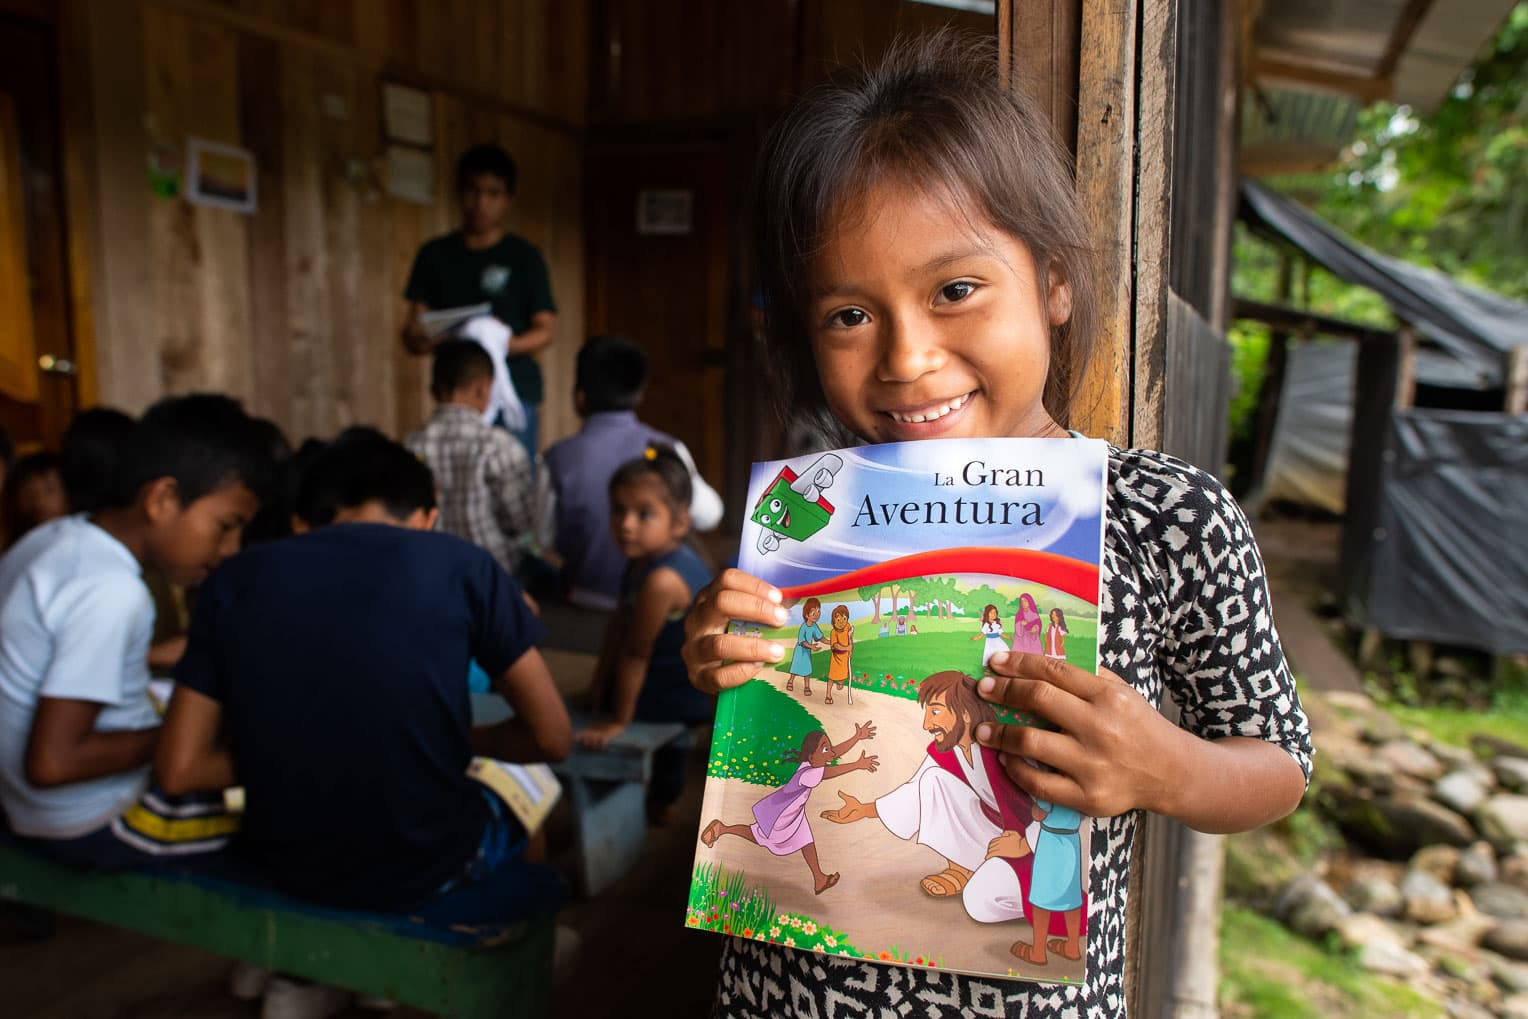 The Greatest Journey is our follow-up discipleship program for boys and girls who receive Operation Christmas Child shoebox gifts.